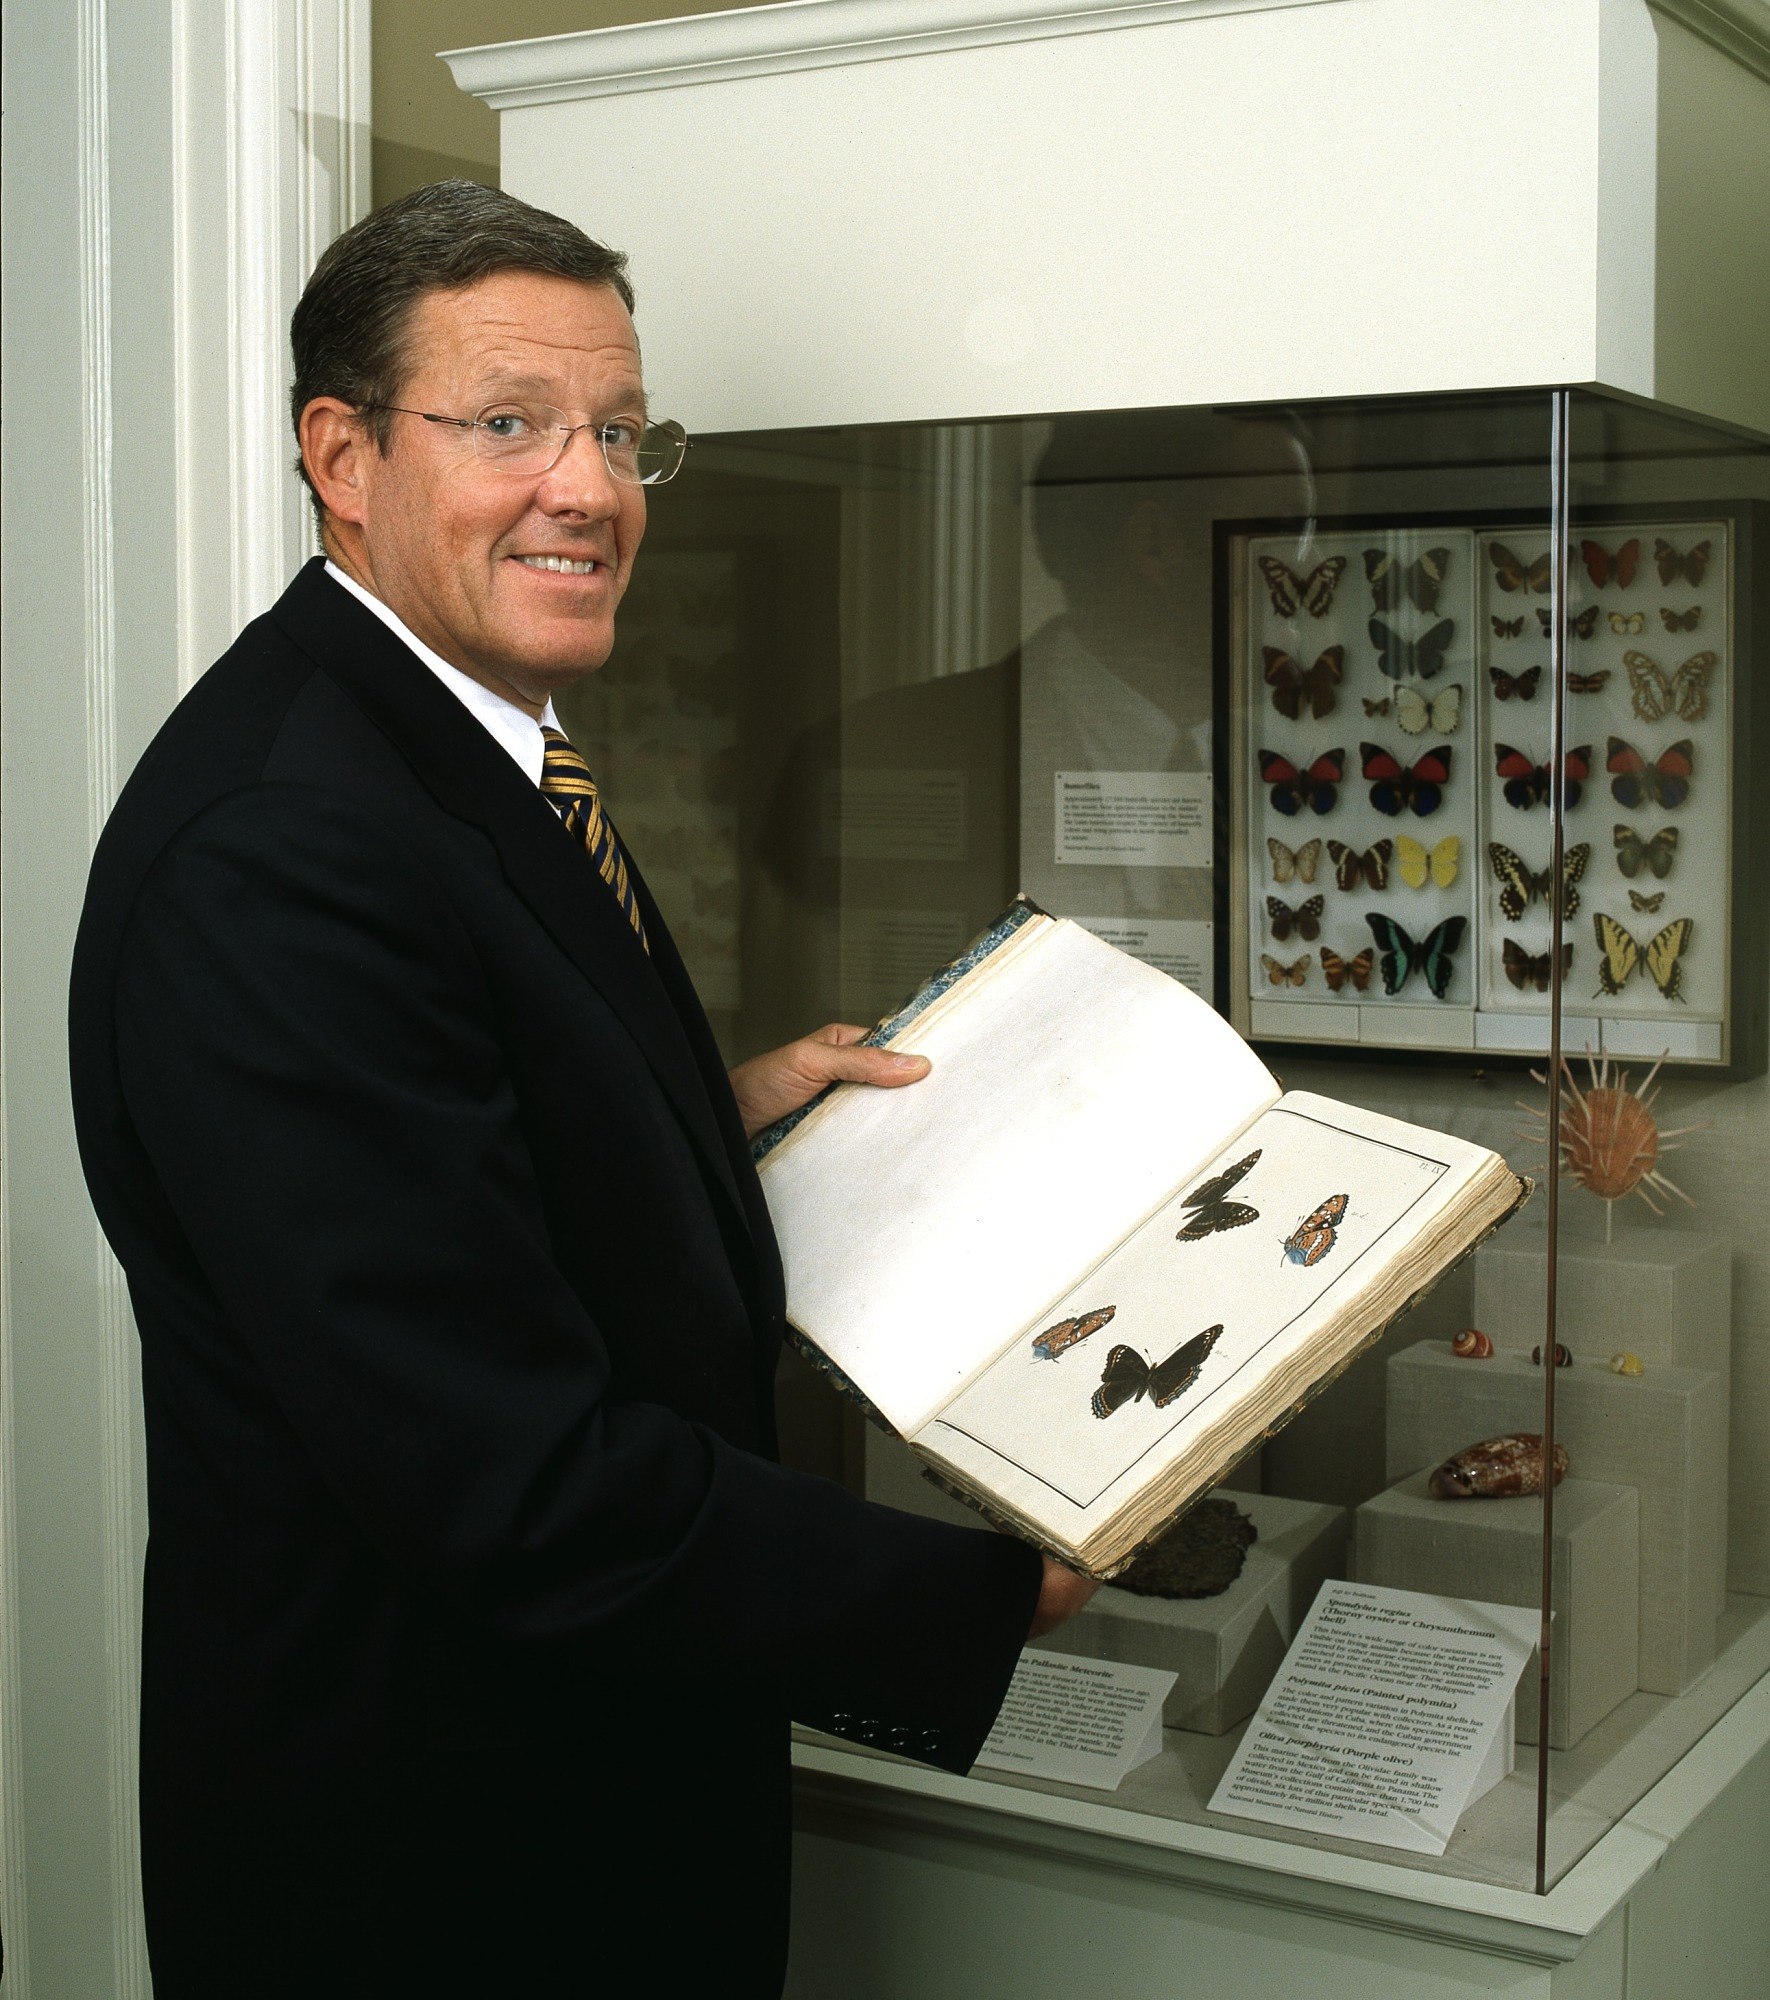 Secretary Small with Rare Book from SI Libraries